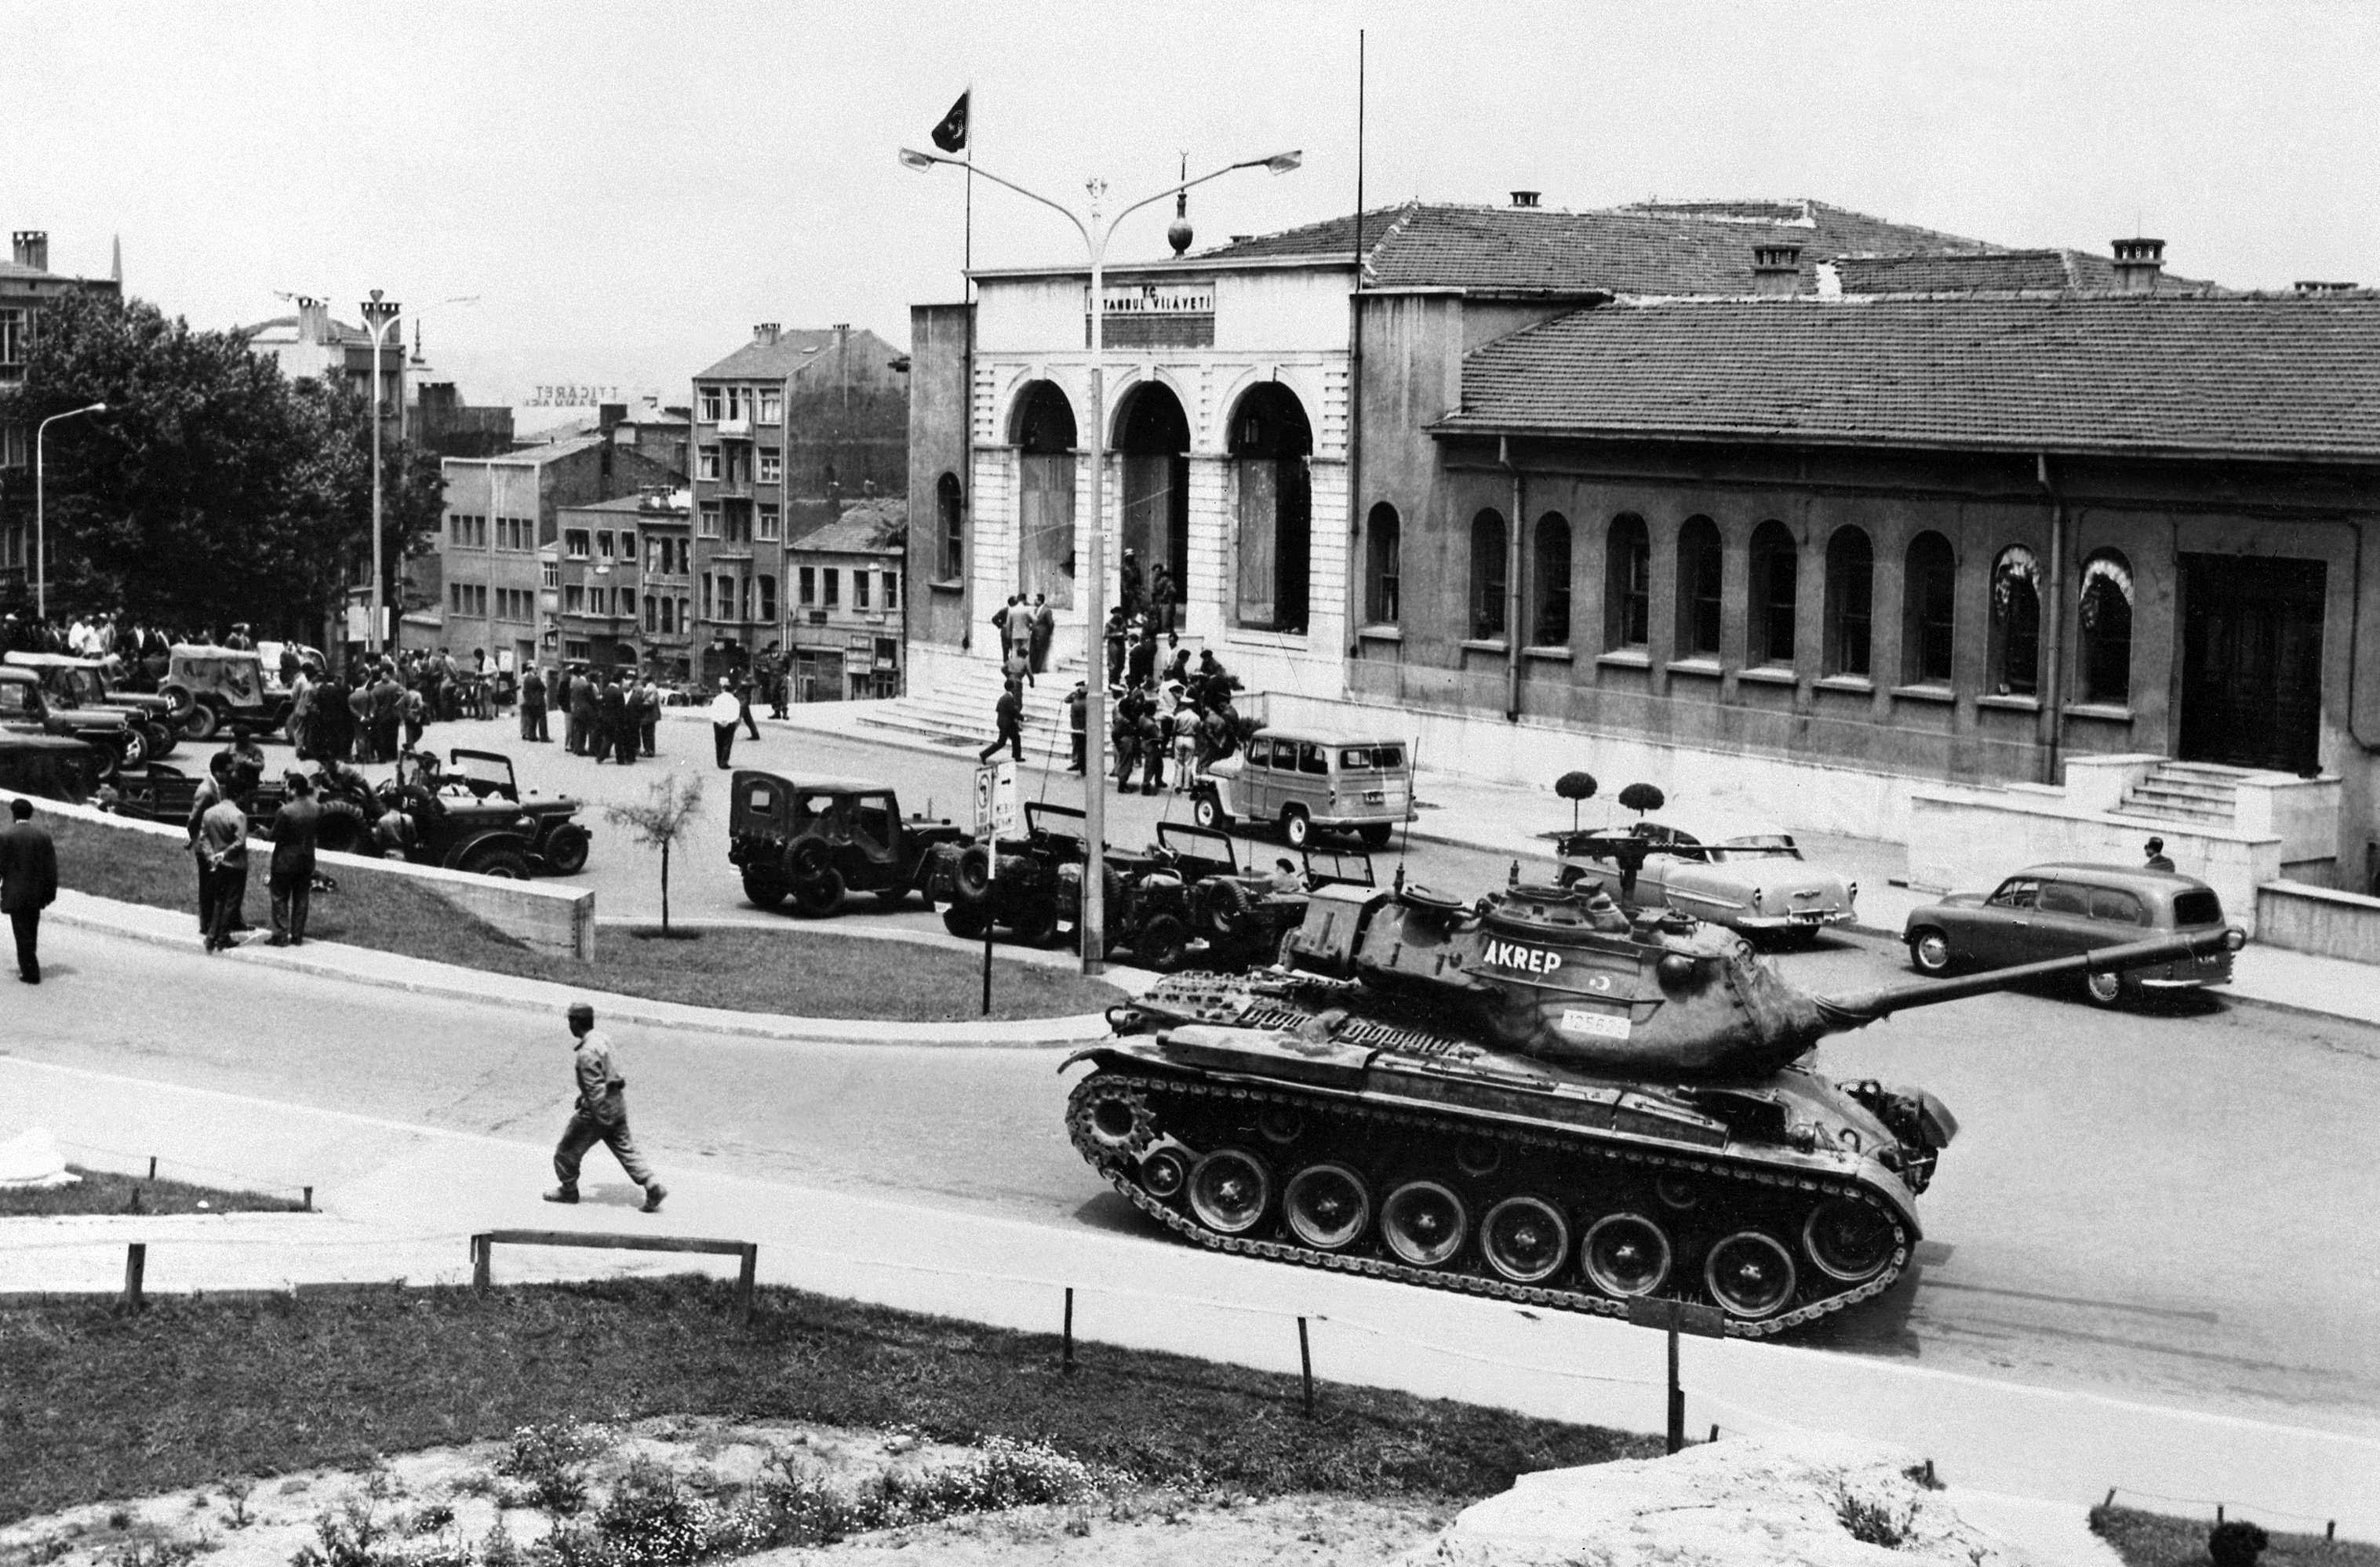 Following the overthrow of the Democratic Party by a military coup d'état, the Governor's Residence in Istanbul is guarded by Turkish Army tanks 30 May 1960